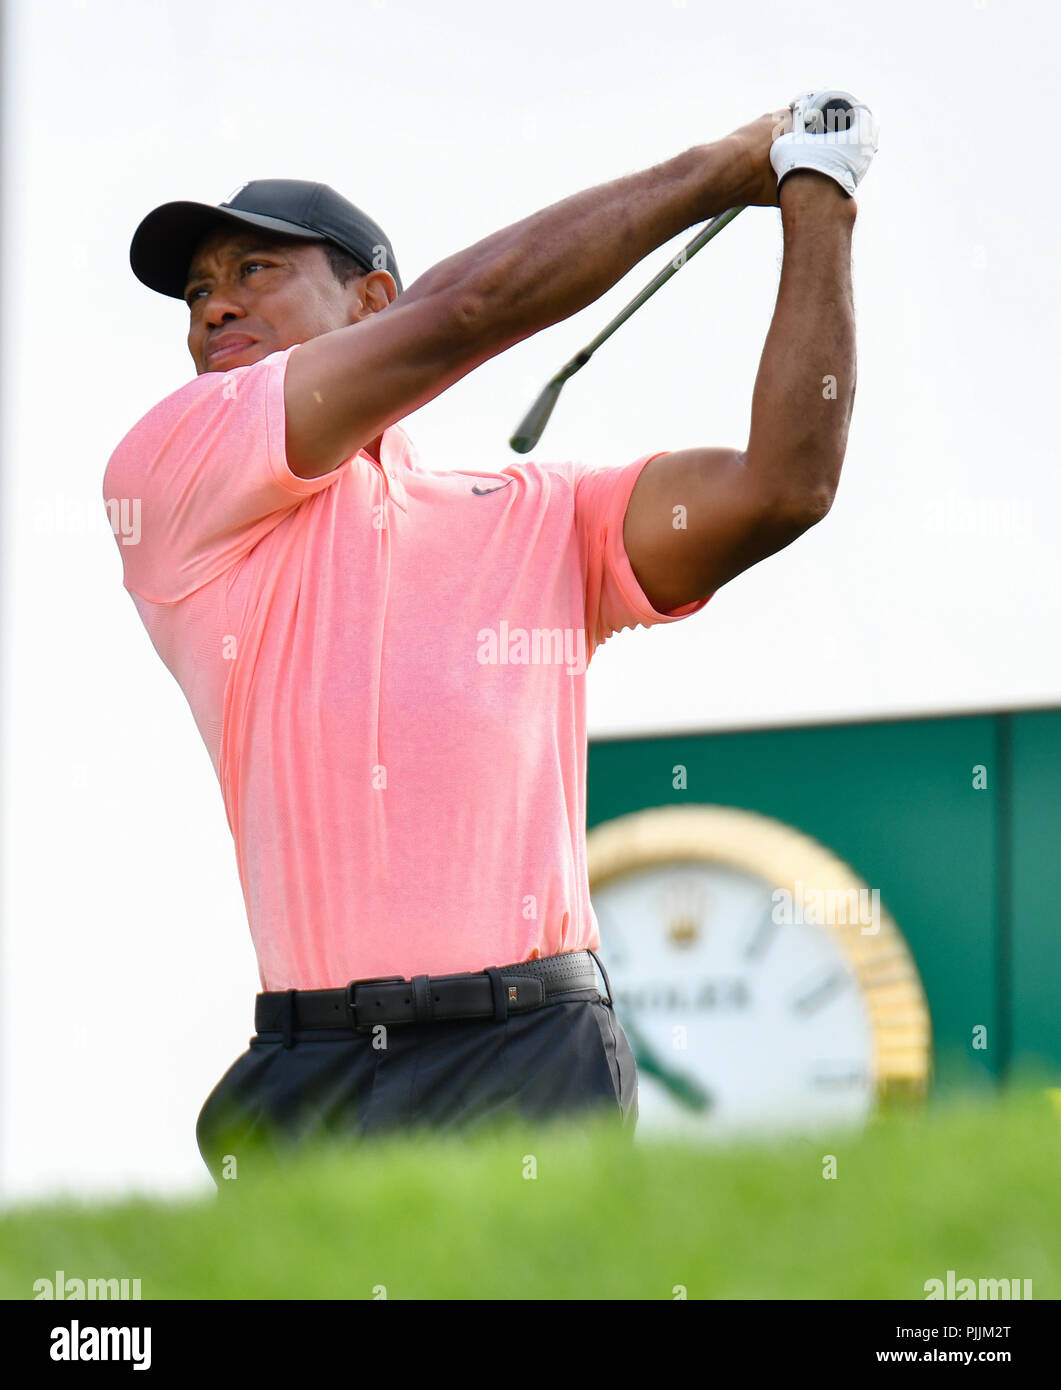 Newtown Square, Pennsylvania, USA: Friday September 7, 2018: Tiger Woods hits his tee shot on the 8th hole during the second round of the BMW Championship at Aronimink Golf Course in Newtown Square, Pennsylvania. Gregory Vasil/CSM Credit: Cal Sport Media/Alamy Live News - Stock Image